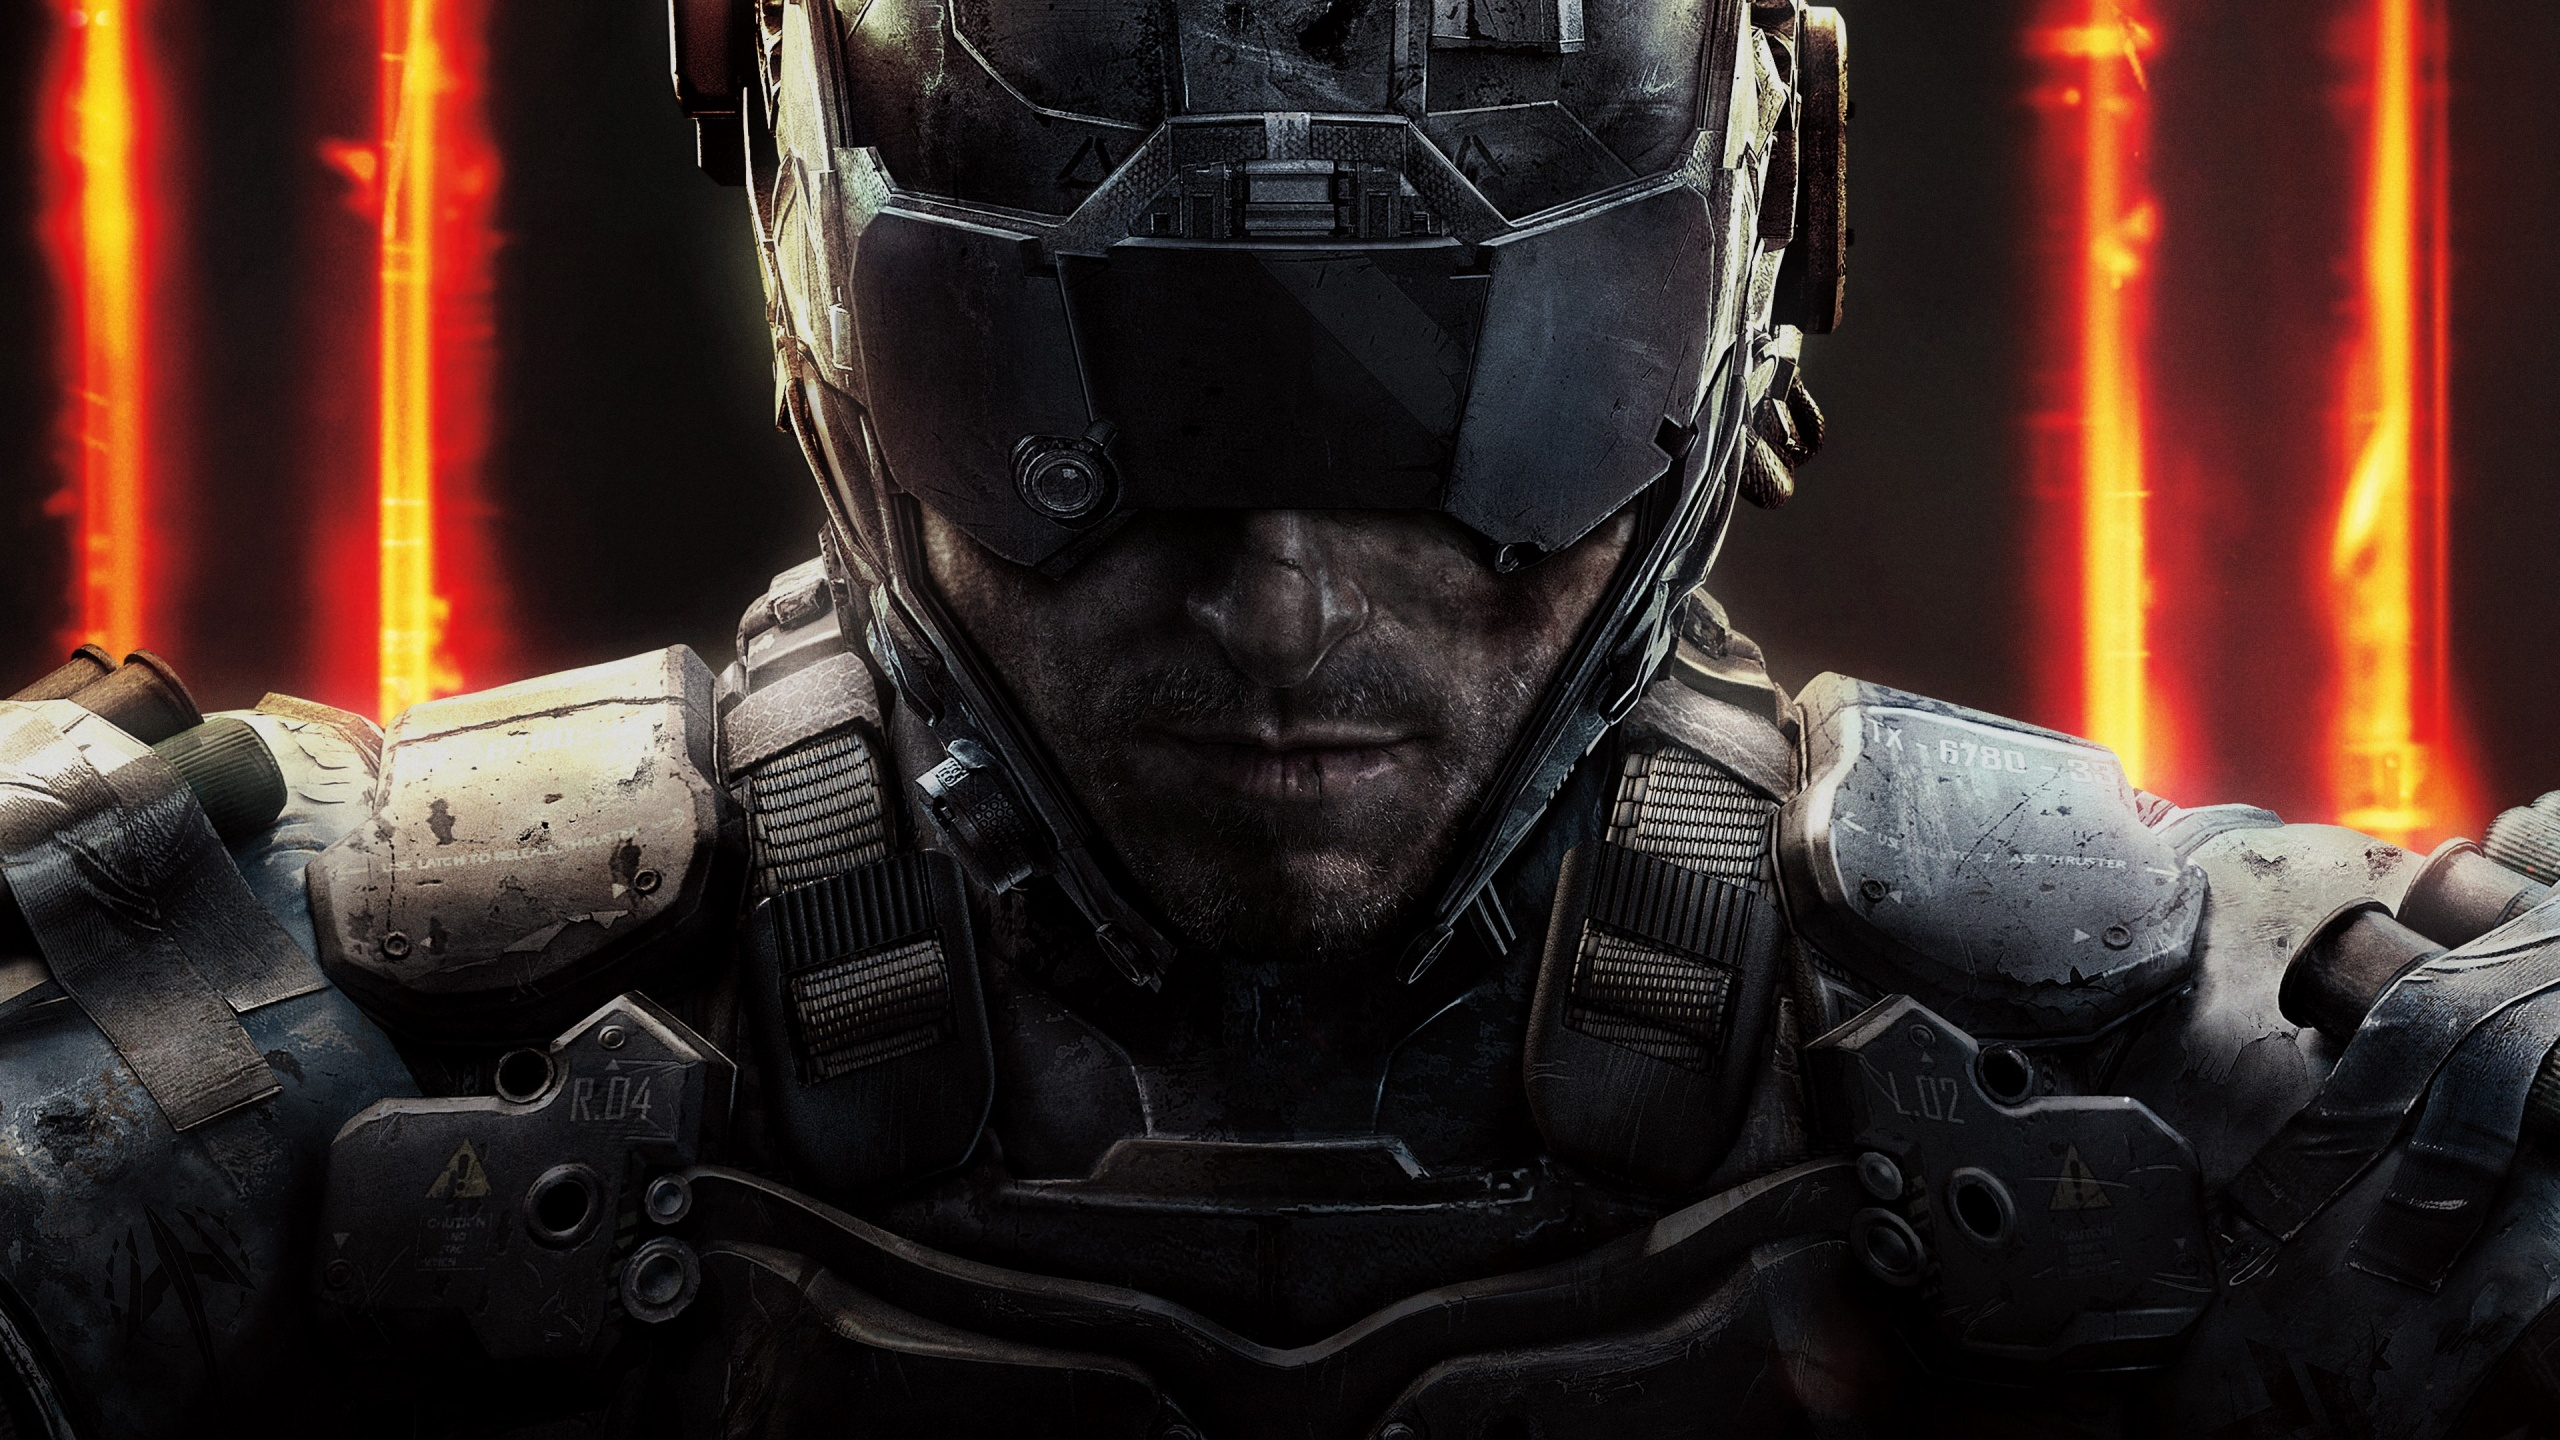 Call Of Duty Black Ops 3 4k Wallpapers 2560x1440 1328016